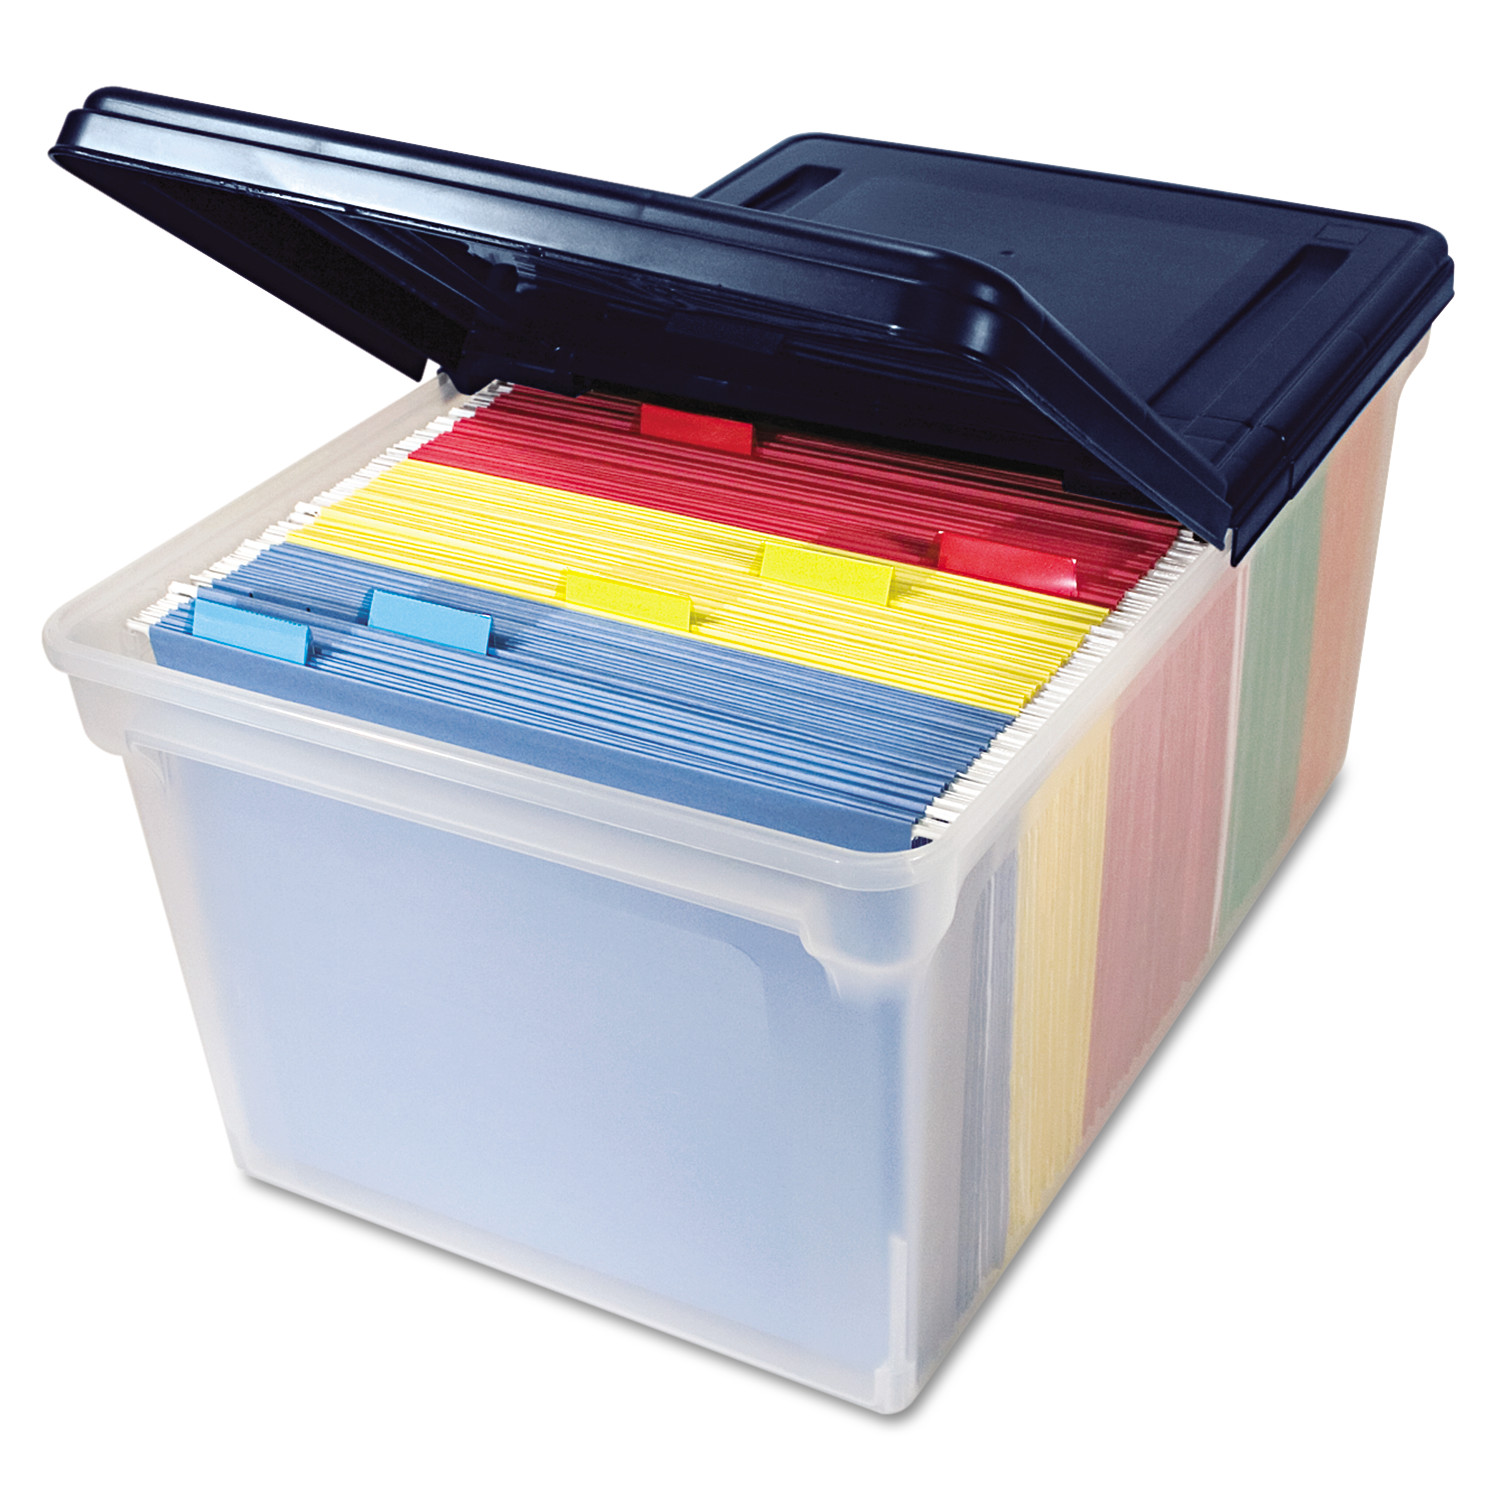 WeatherShield Storage Box, Clear (Available In A Case Of 4 Or Single Unit)    Walmart.com